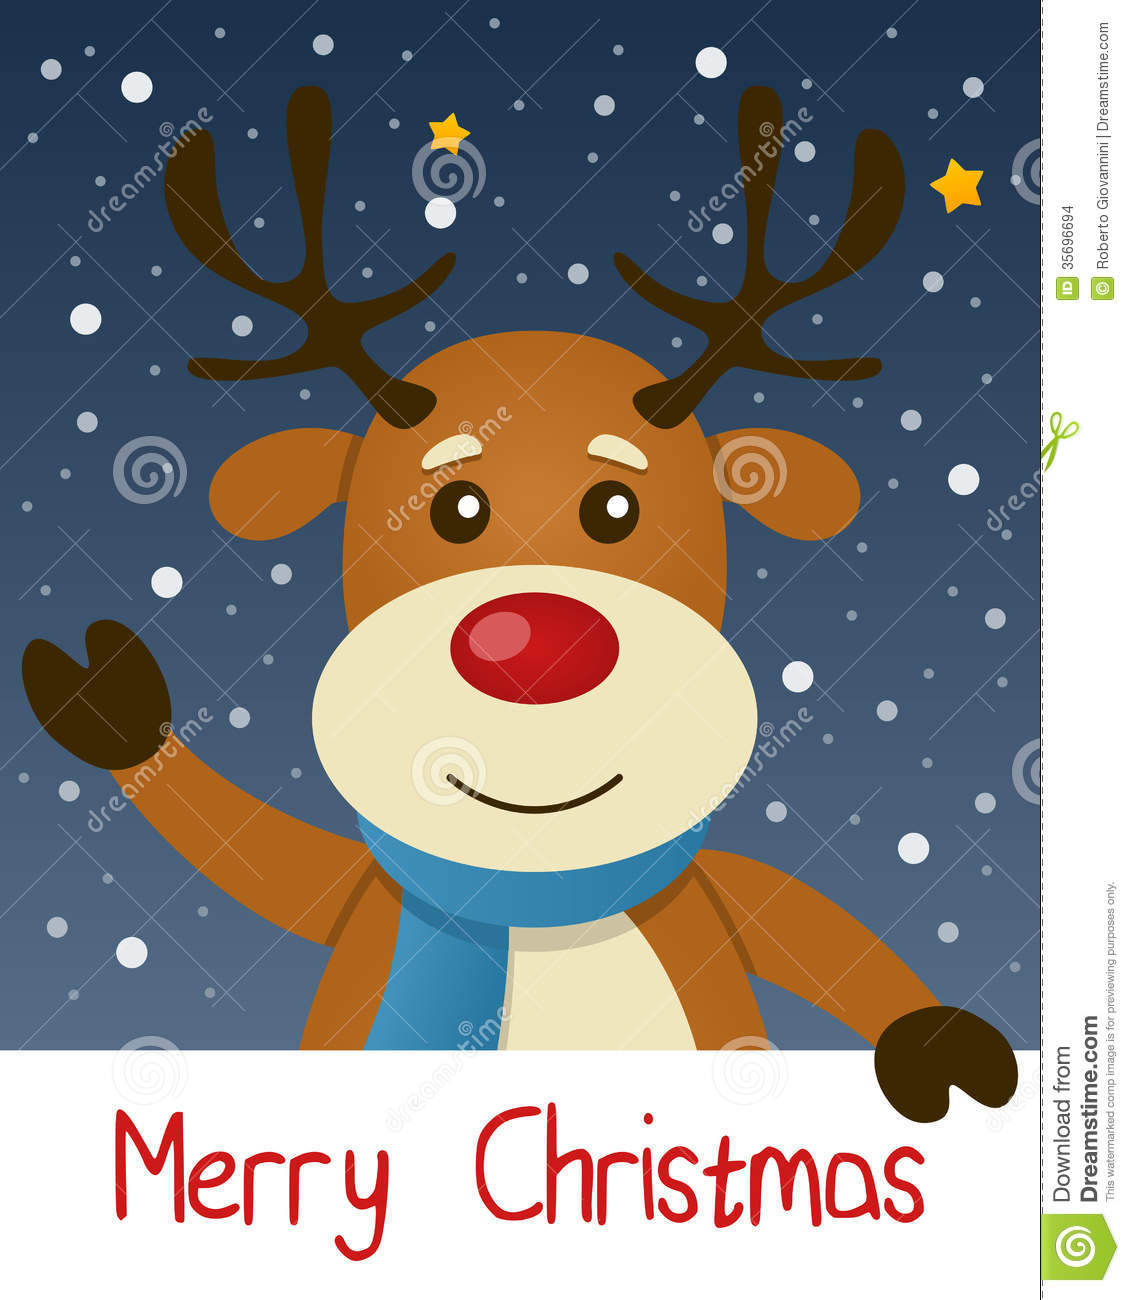 Reindeer Christmas Greeting Card Stock Images - Image: 35696694